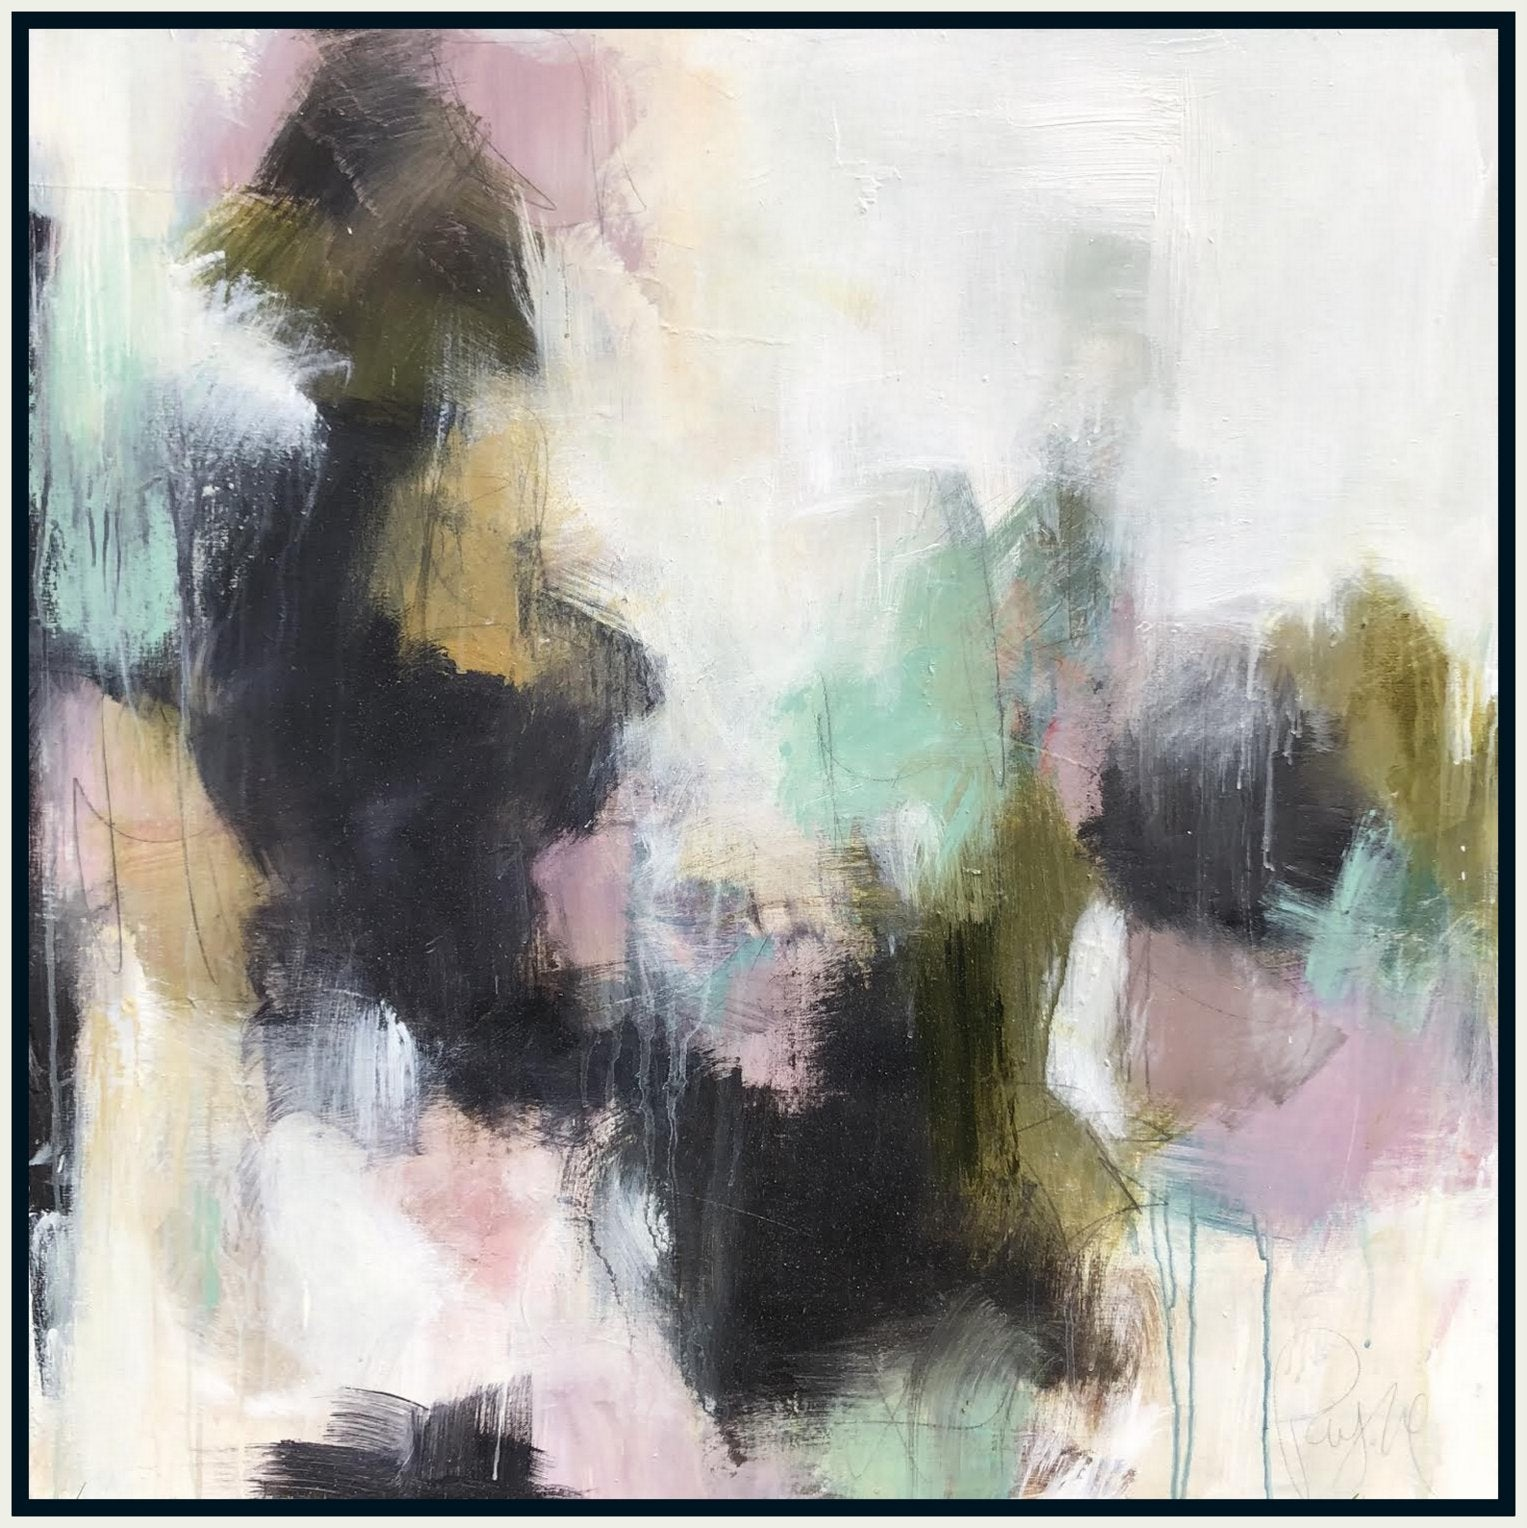 "This new painting by <a href=""https://huffharrington.com/collections/melissa-payne-baker"" target=""_blank"">Melissa Payne Baker</a> is another great example of an abstract paintings with perfect balance and composition."